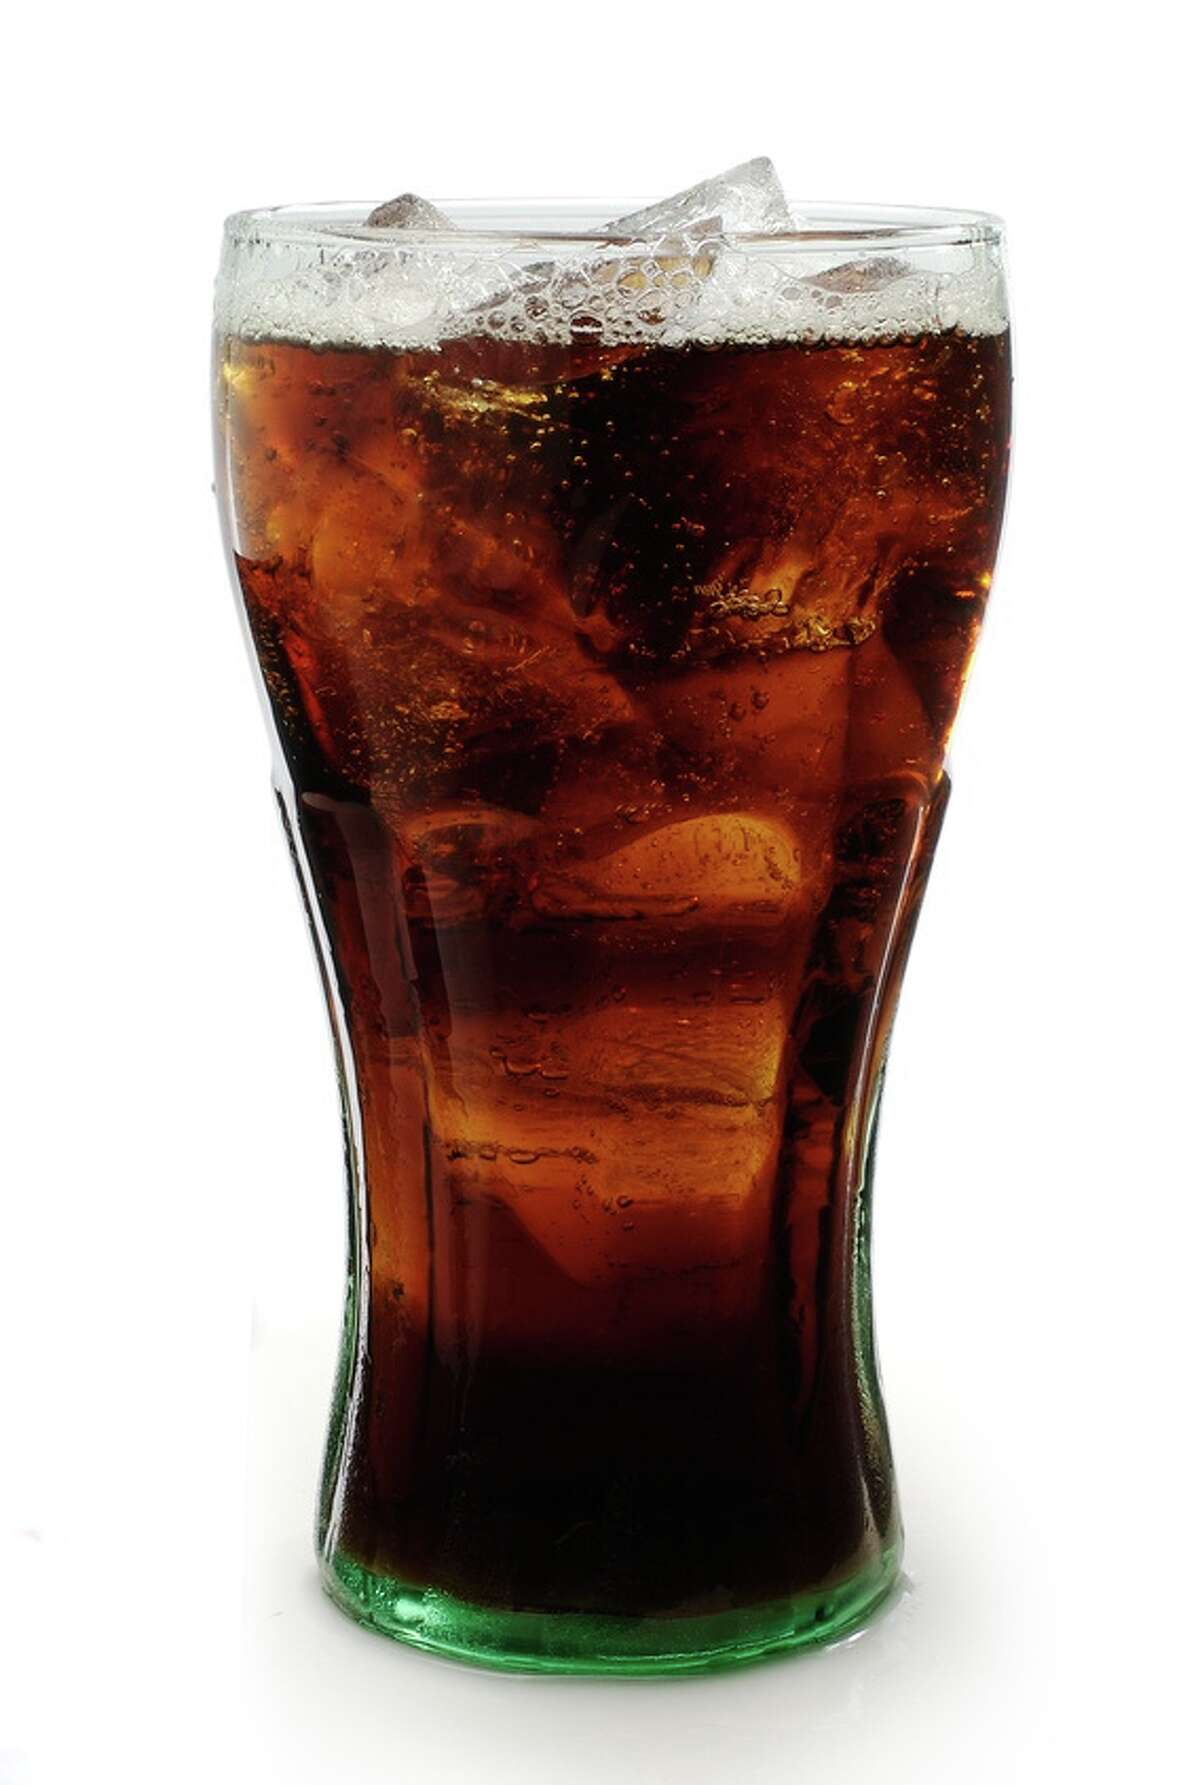 Soda from machines